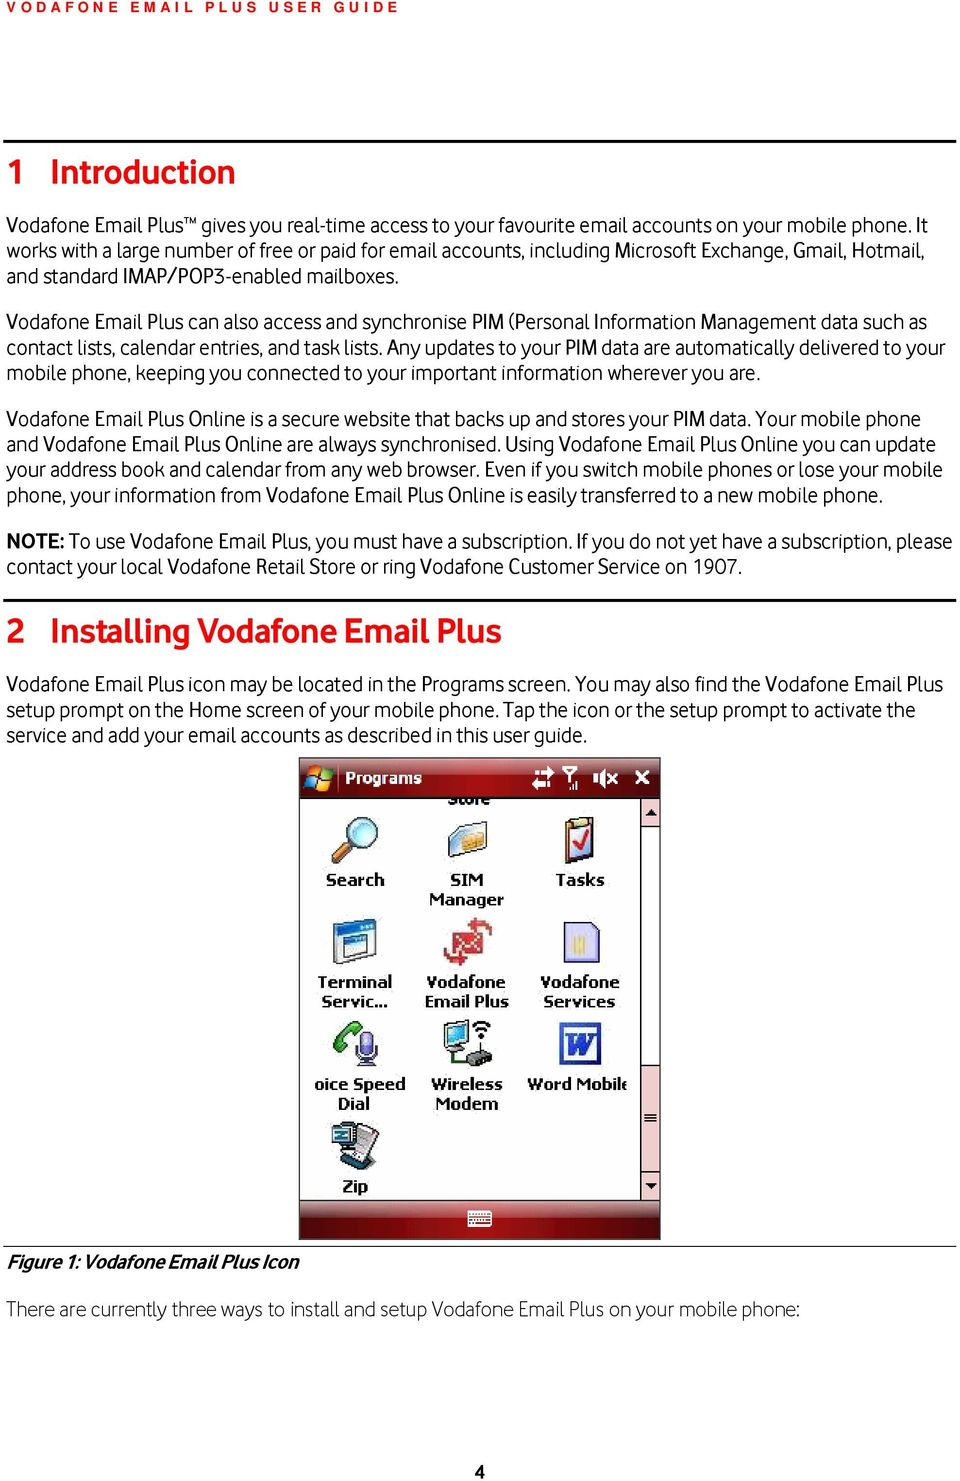 Vodafone Email Plus can also access and synchronise PIM (Personal Information Management data such as contact lists, calendar entries, and task lists.